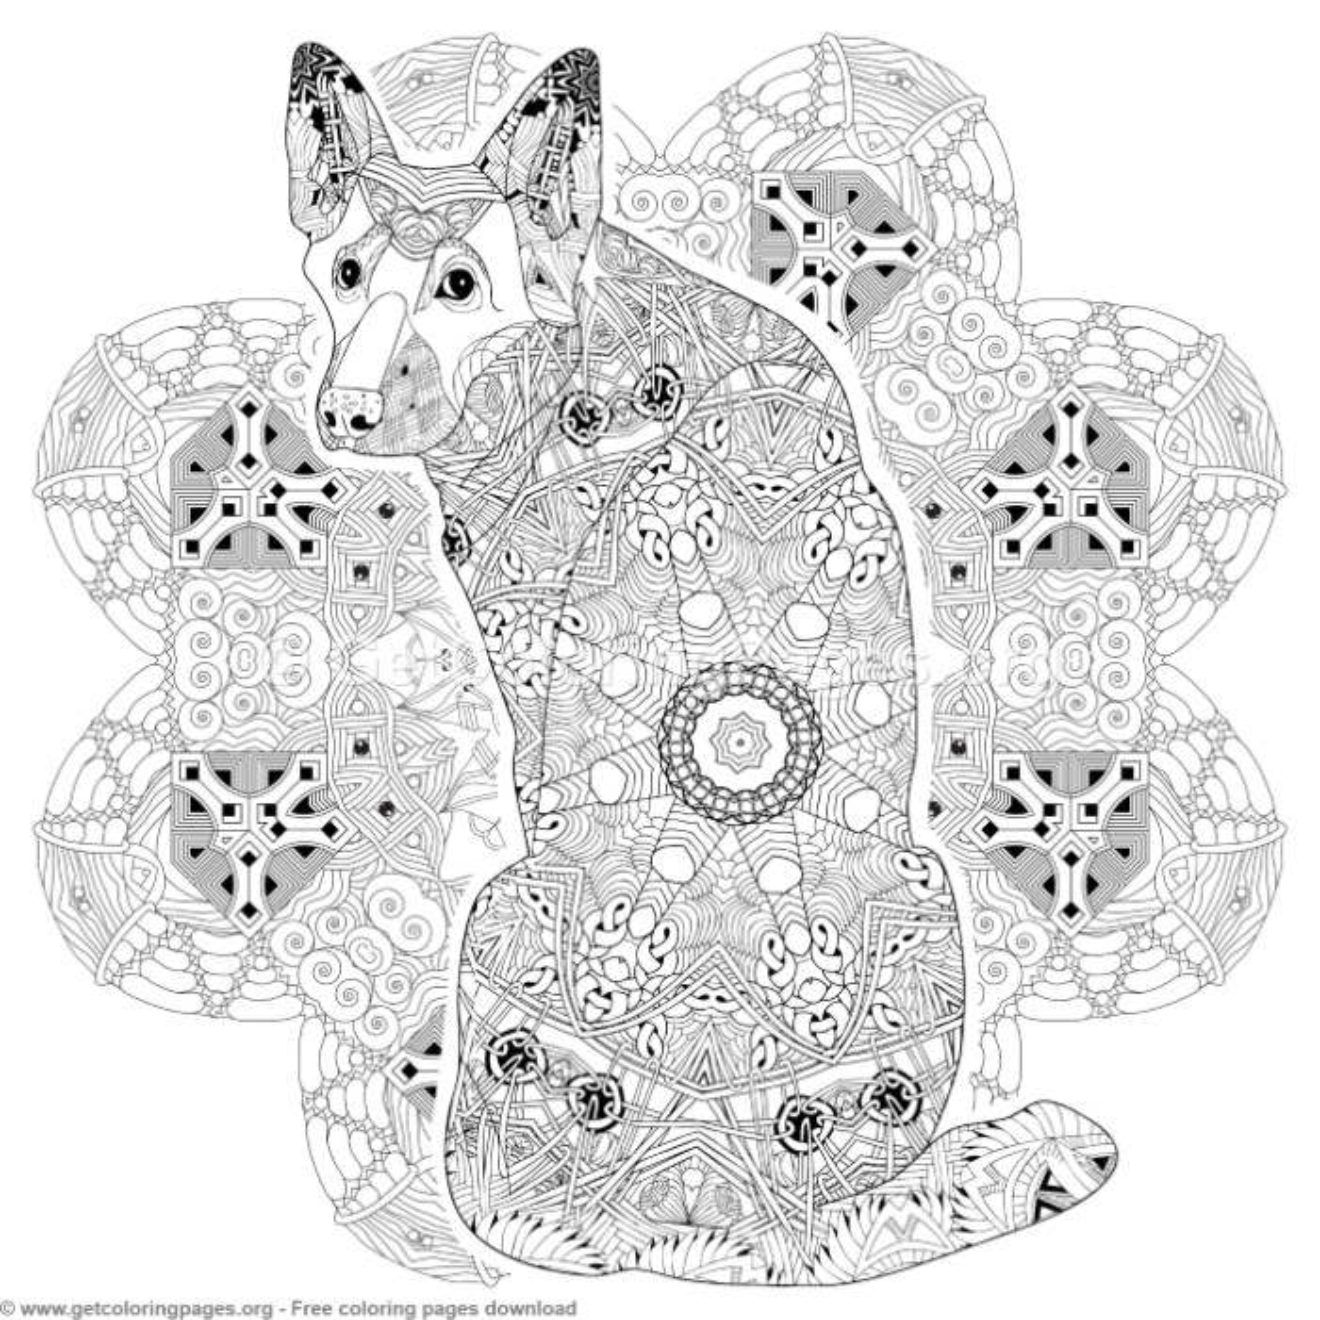 3 Mandala And Dog Coloring Pages Getcoloringpages Org Dog Coloring Page Coloring Pages Mandala Coloring Pages [ 1320 x 1320 Pixel ]